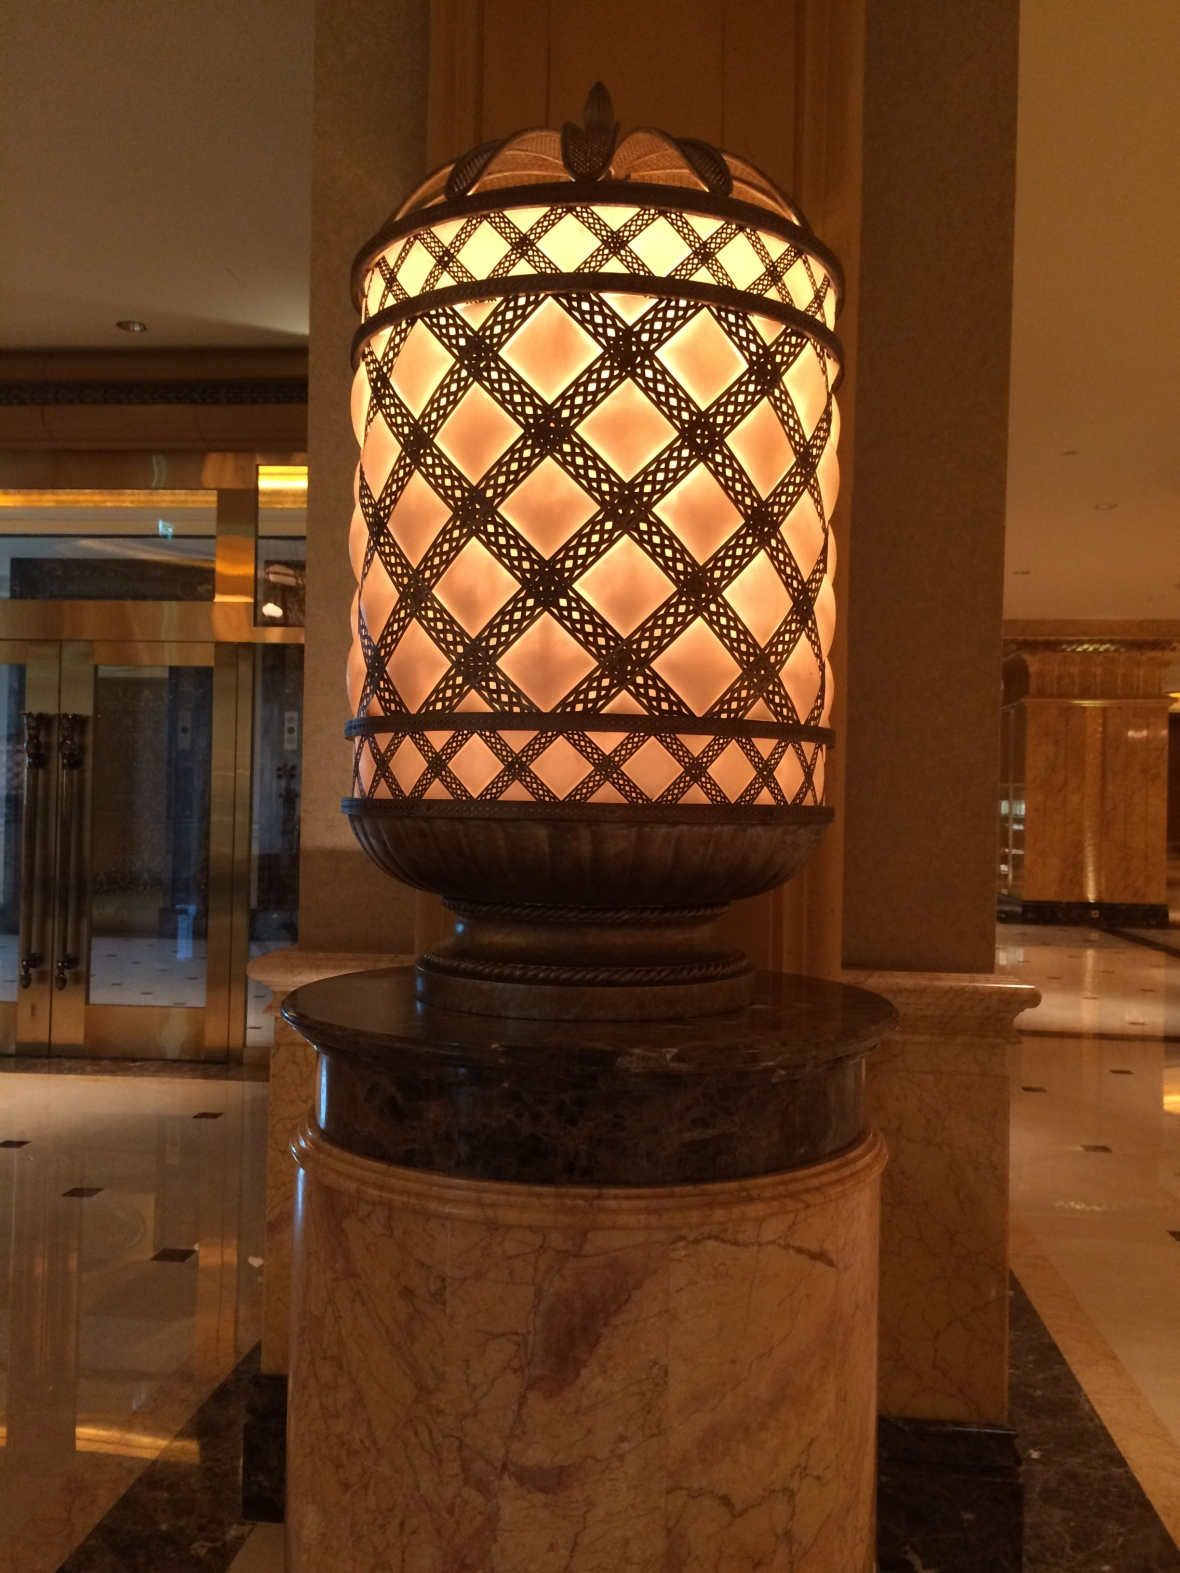 Lights, Emirates Palace Hotel, Abu Dhabi, UAE